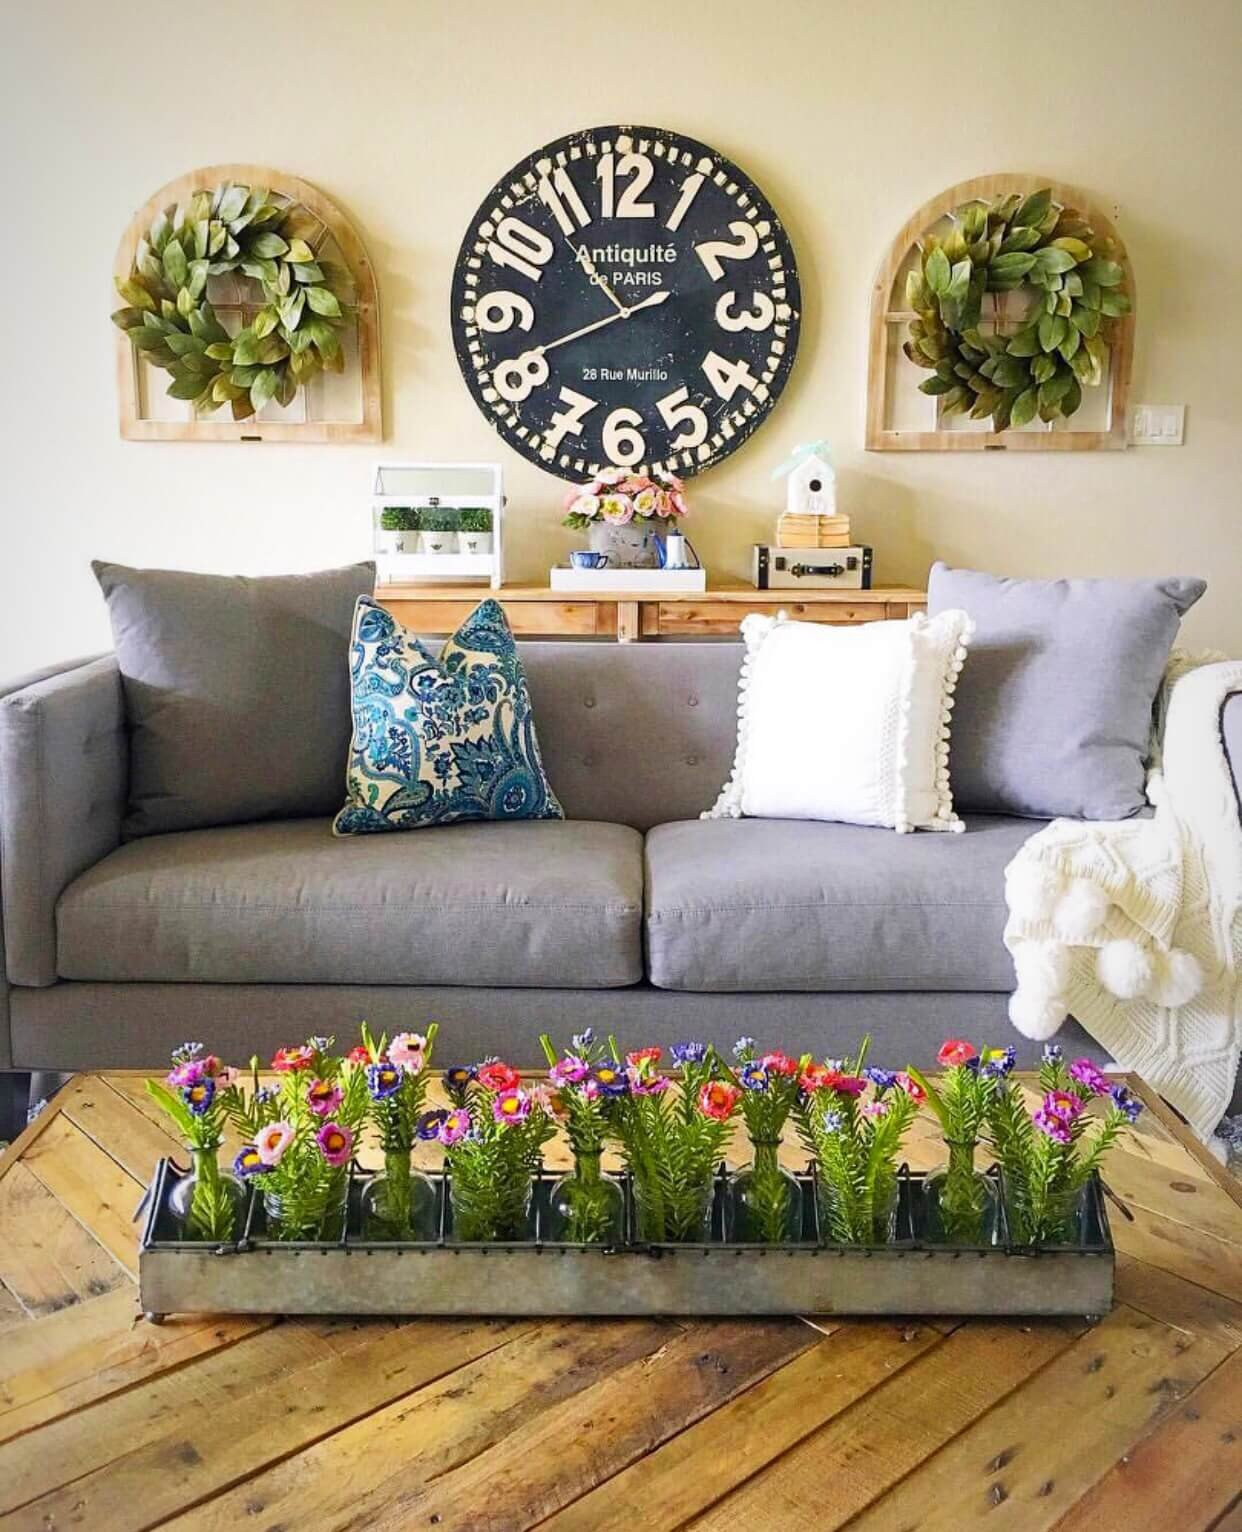 Rustic Living Room Wall Decor New 33 Best Rustic Living Room Wall Decor Ideas and Designs